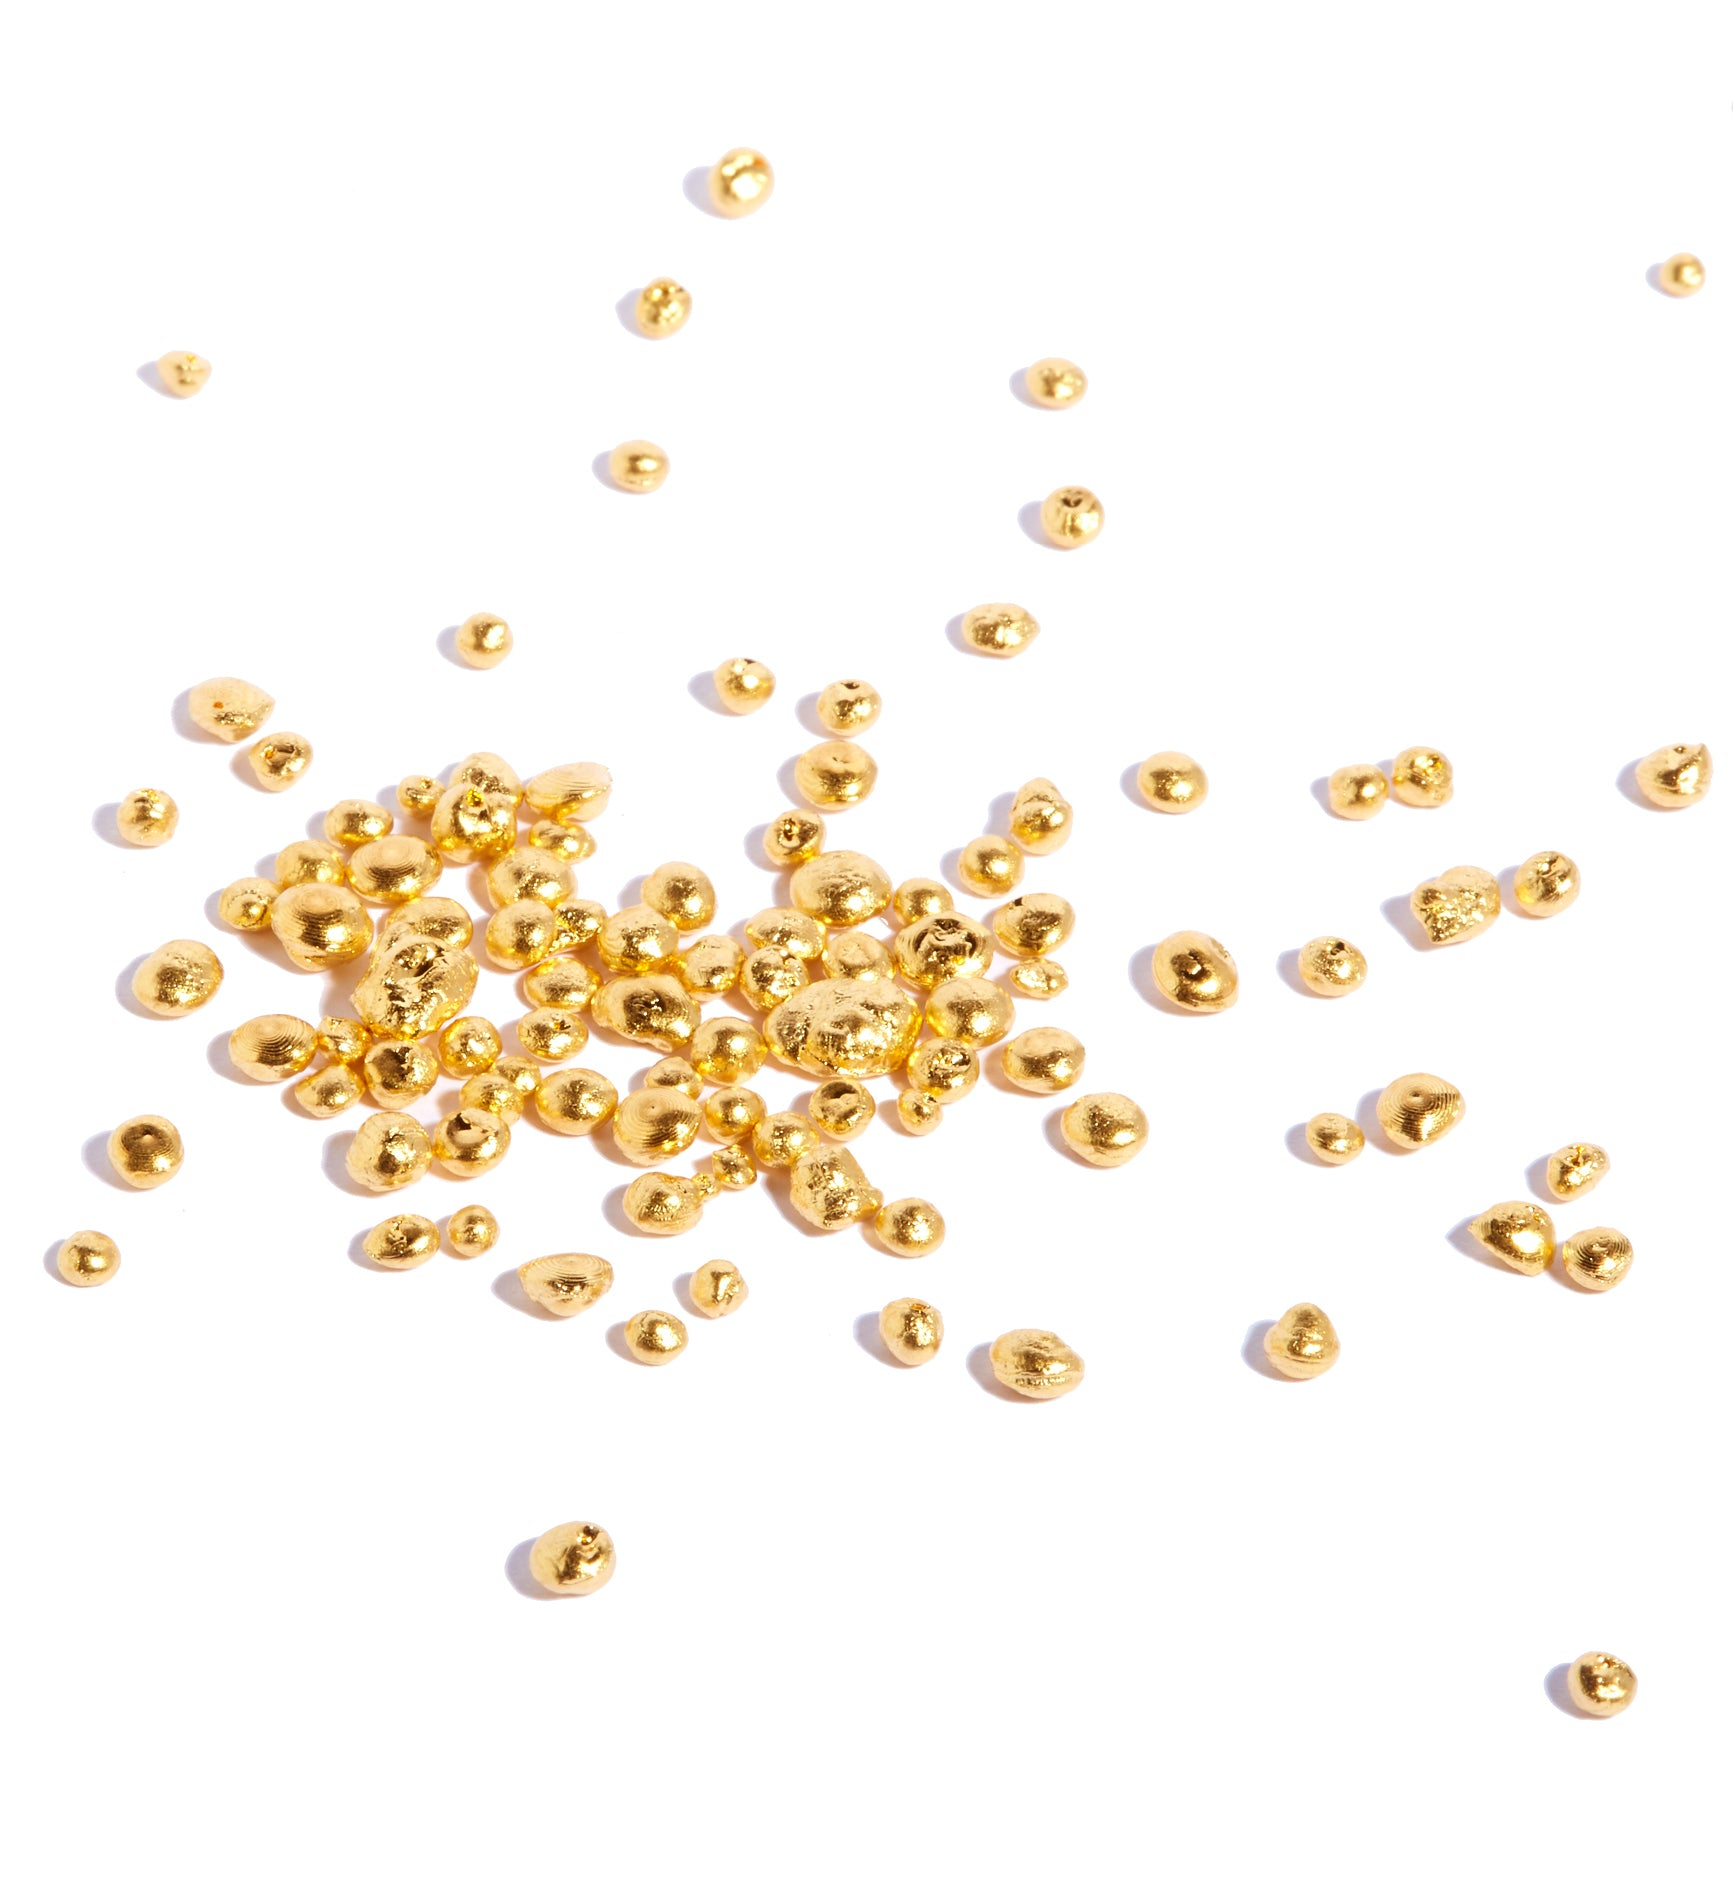 https://cdn.shopify.com/s/files/1/0571/9261/t/15/assets/gold%20granules-1509684350765.jpg?8084314656452299509